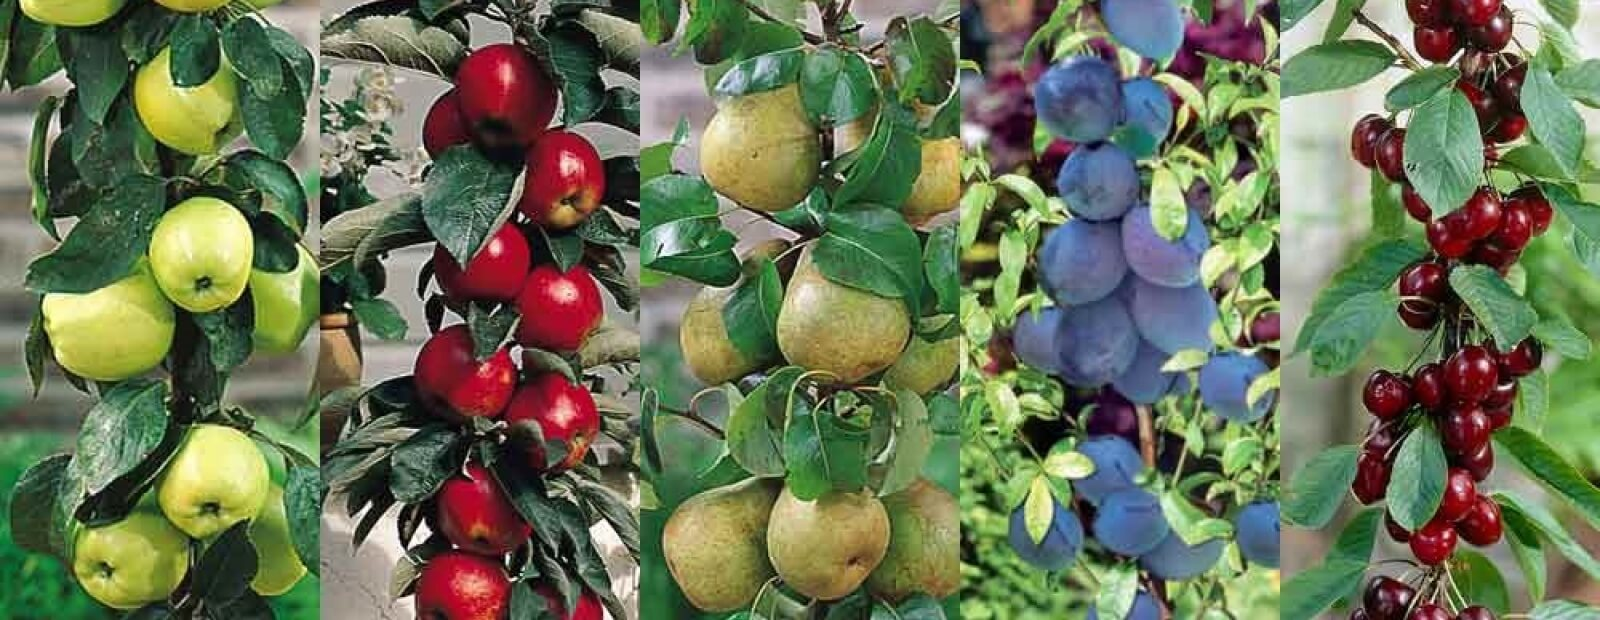 growing fruit - gardening